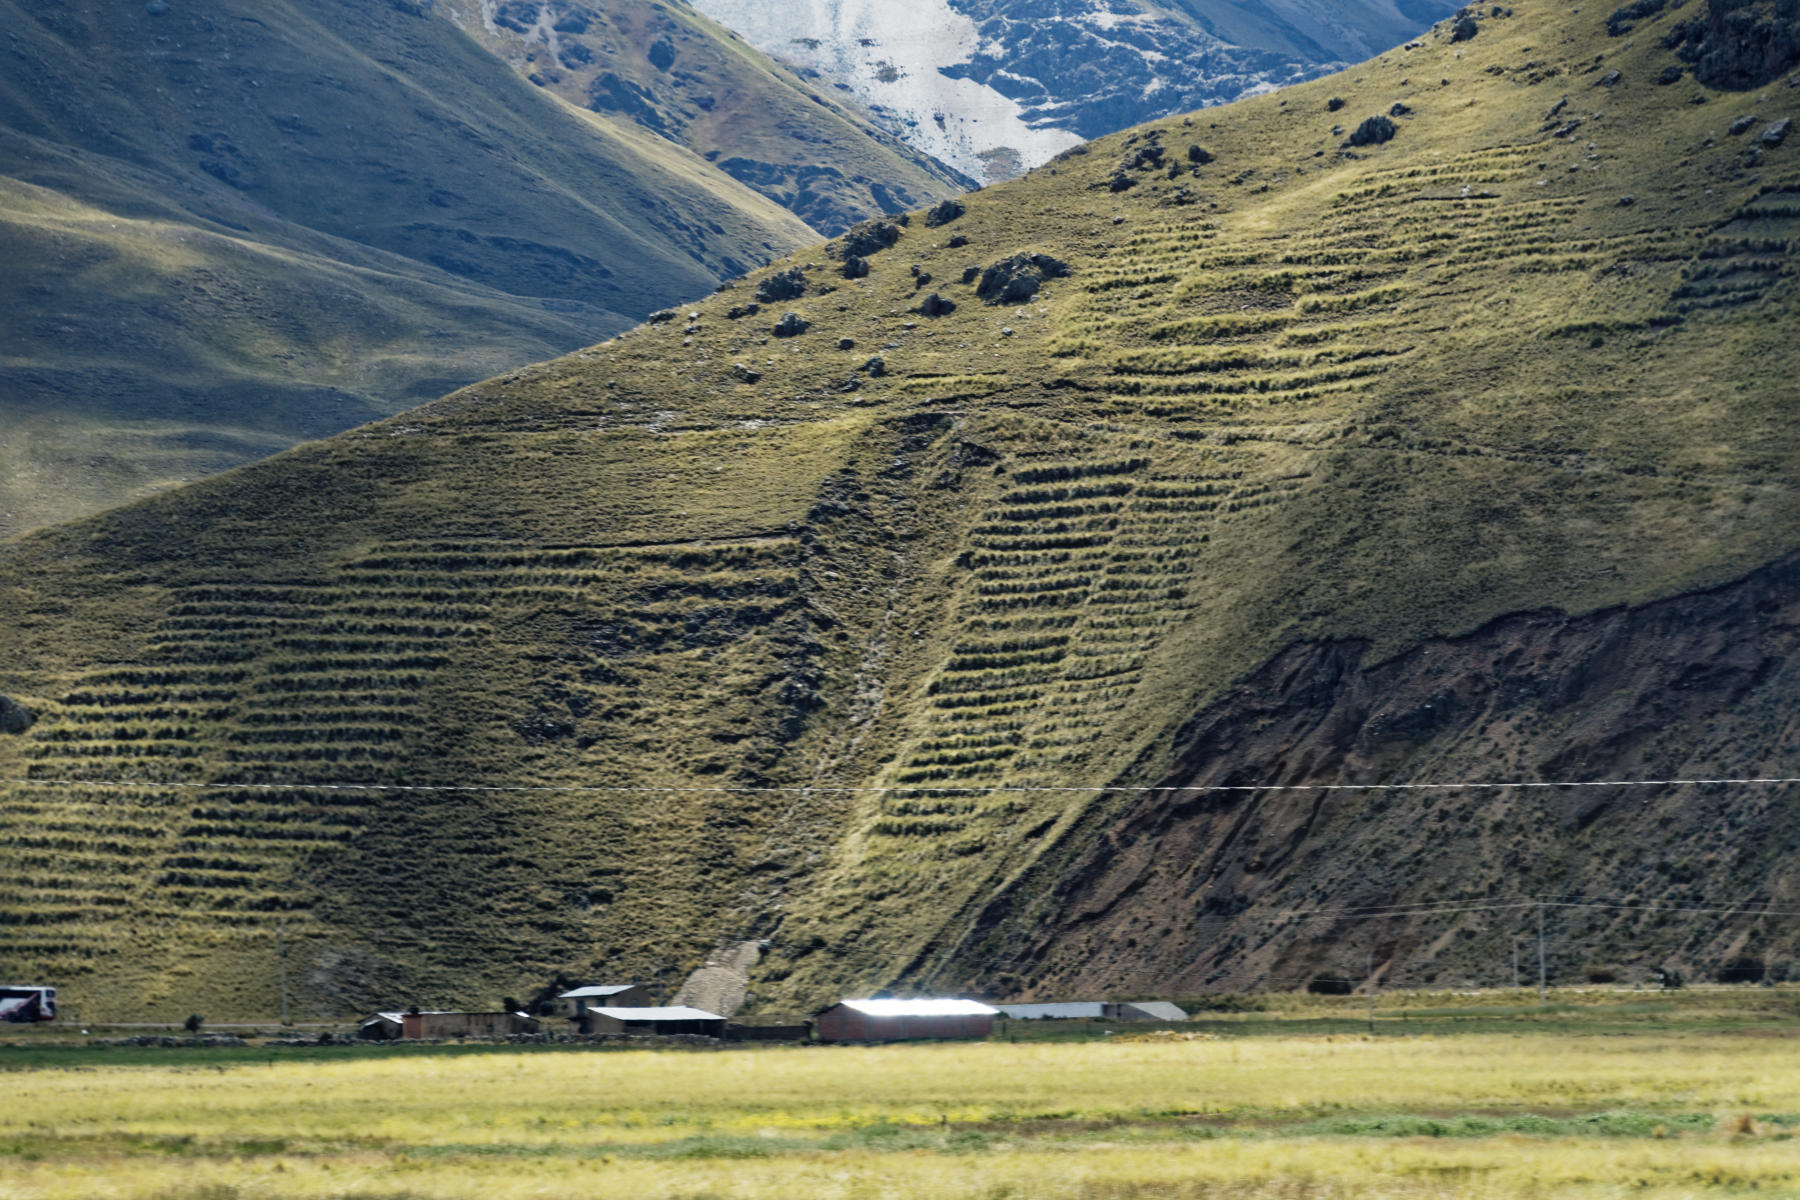 Landscape seen on the Titicaca Train